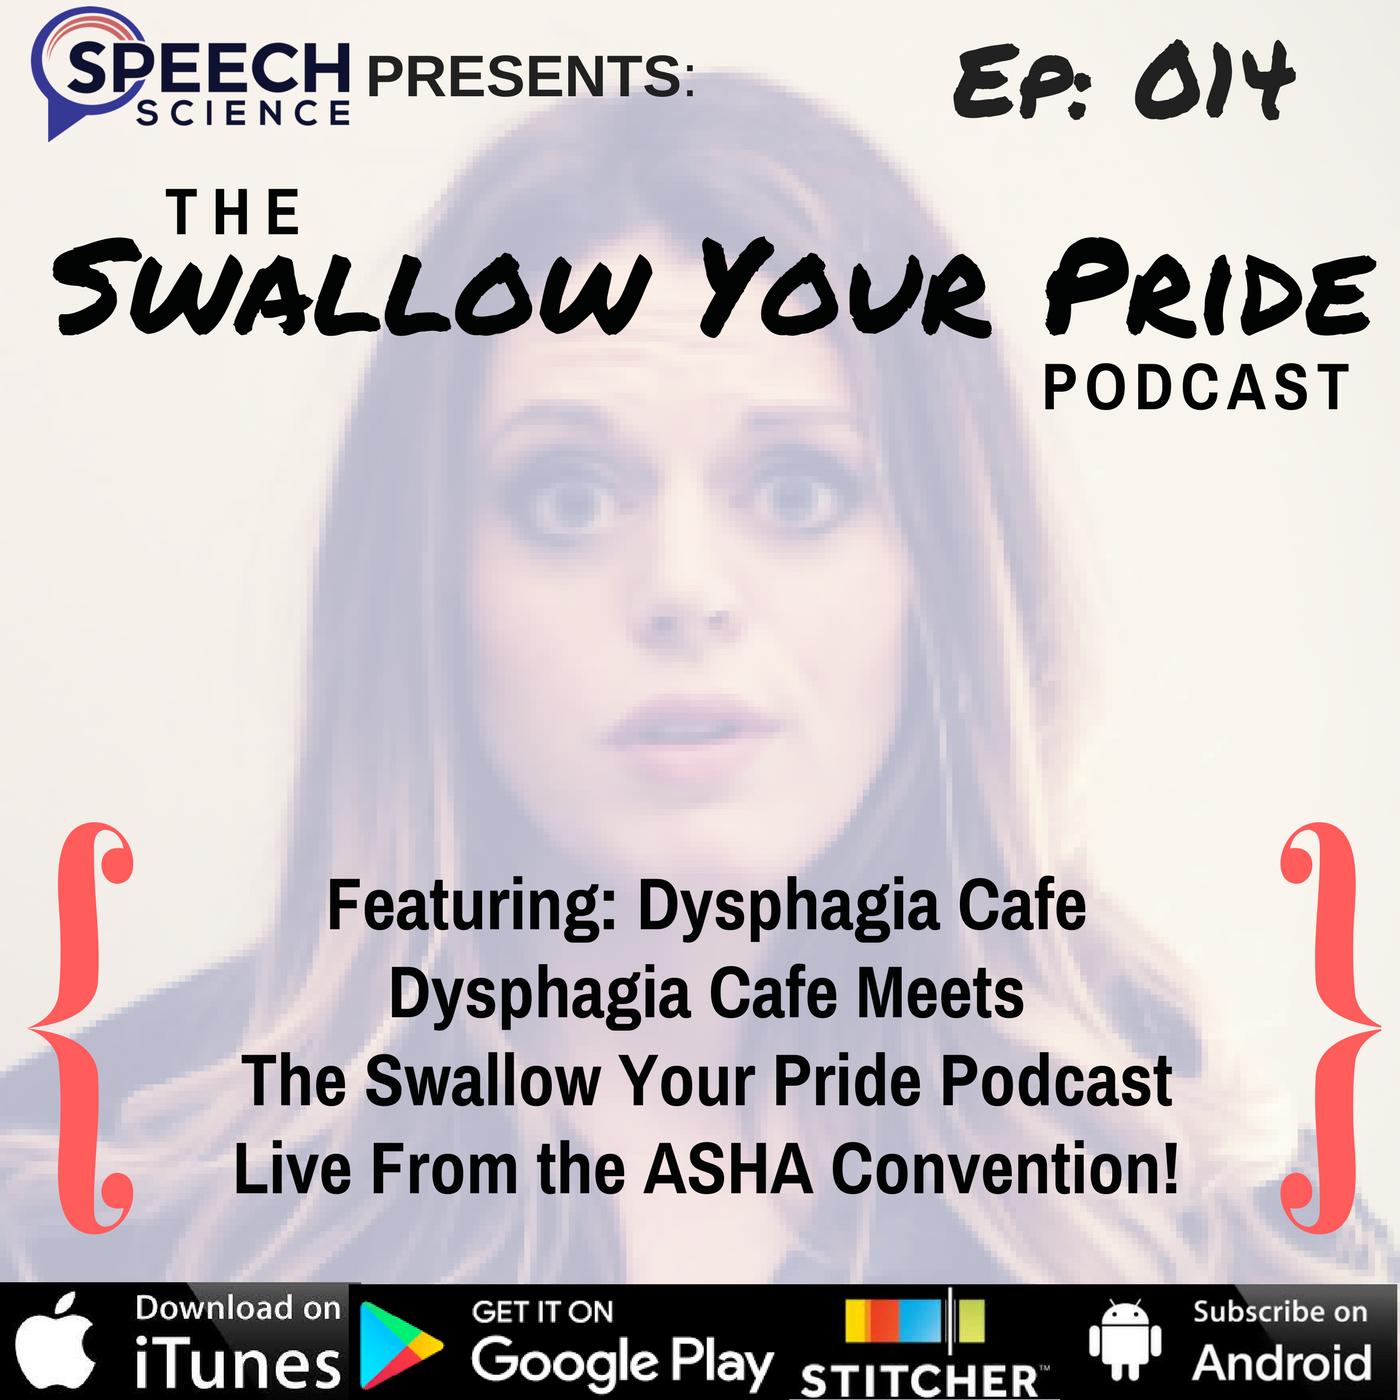 014 – Dysphagia Cafe meets The Swallow Your Pride Podcast Live from the ASHA Convention!